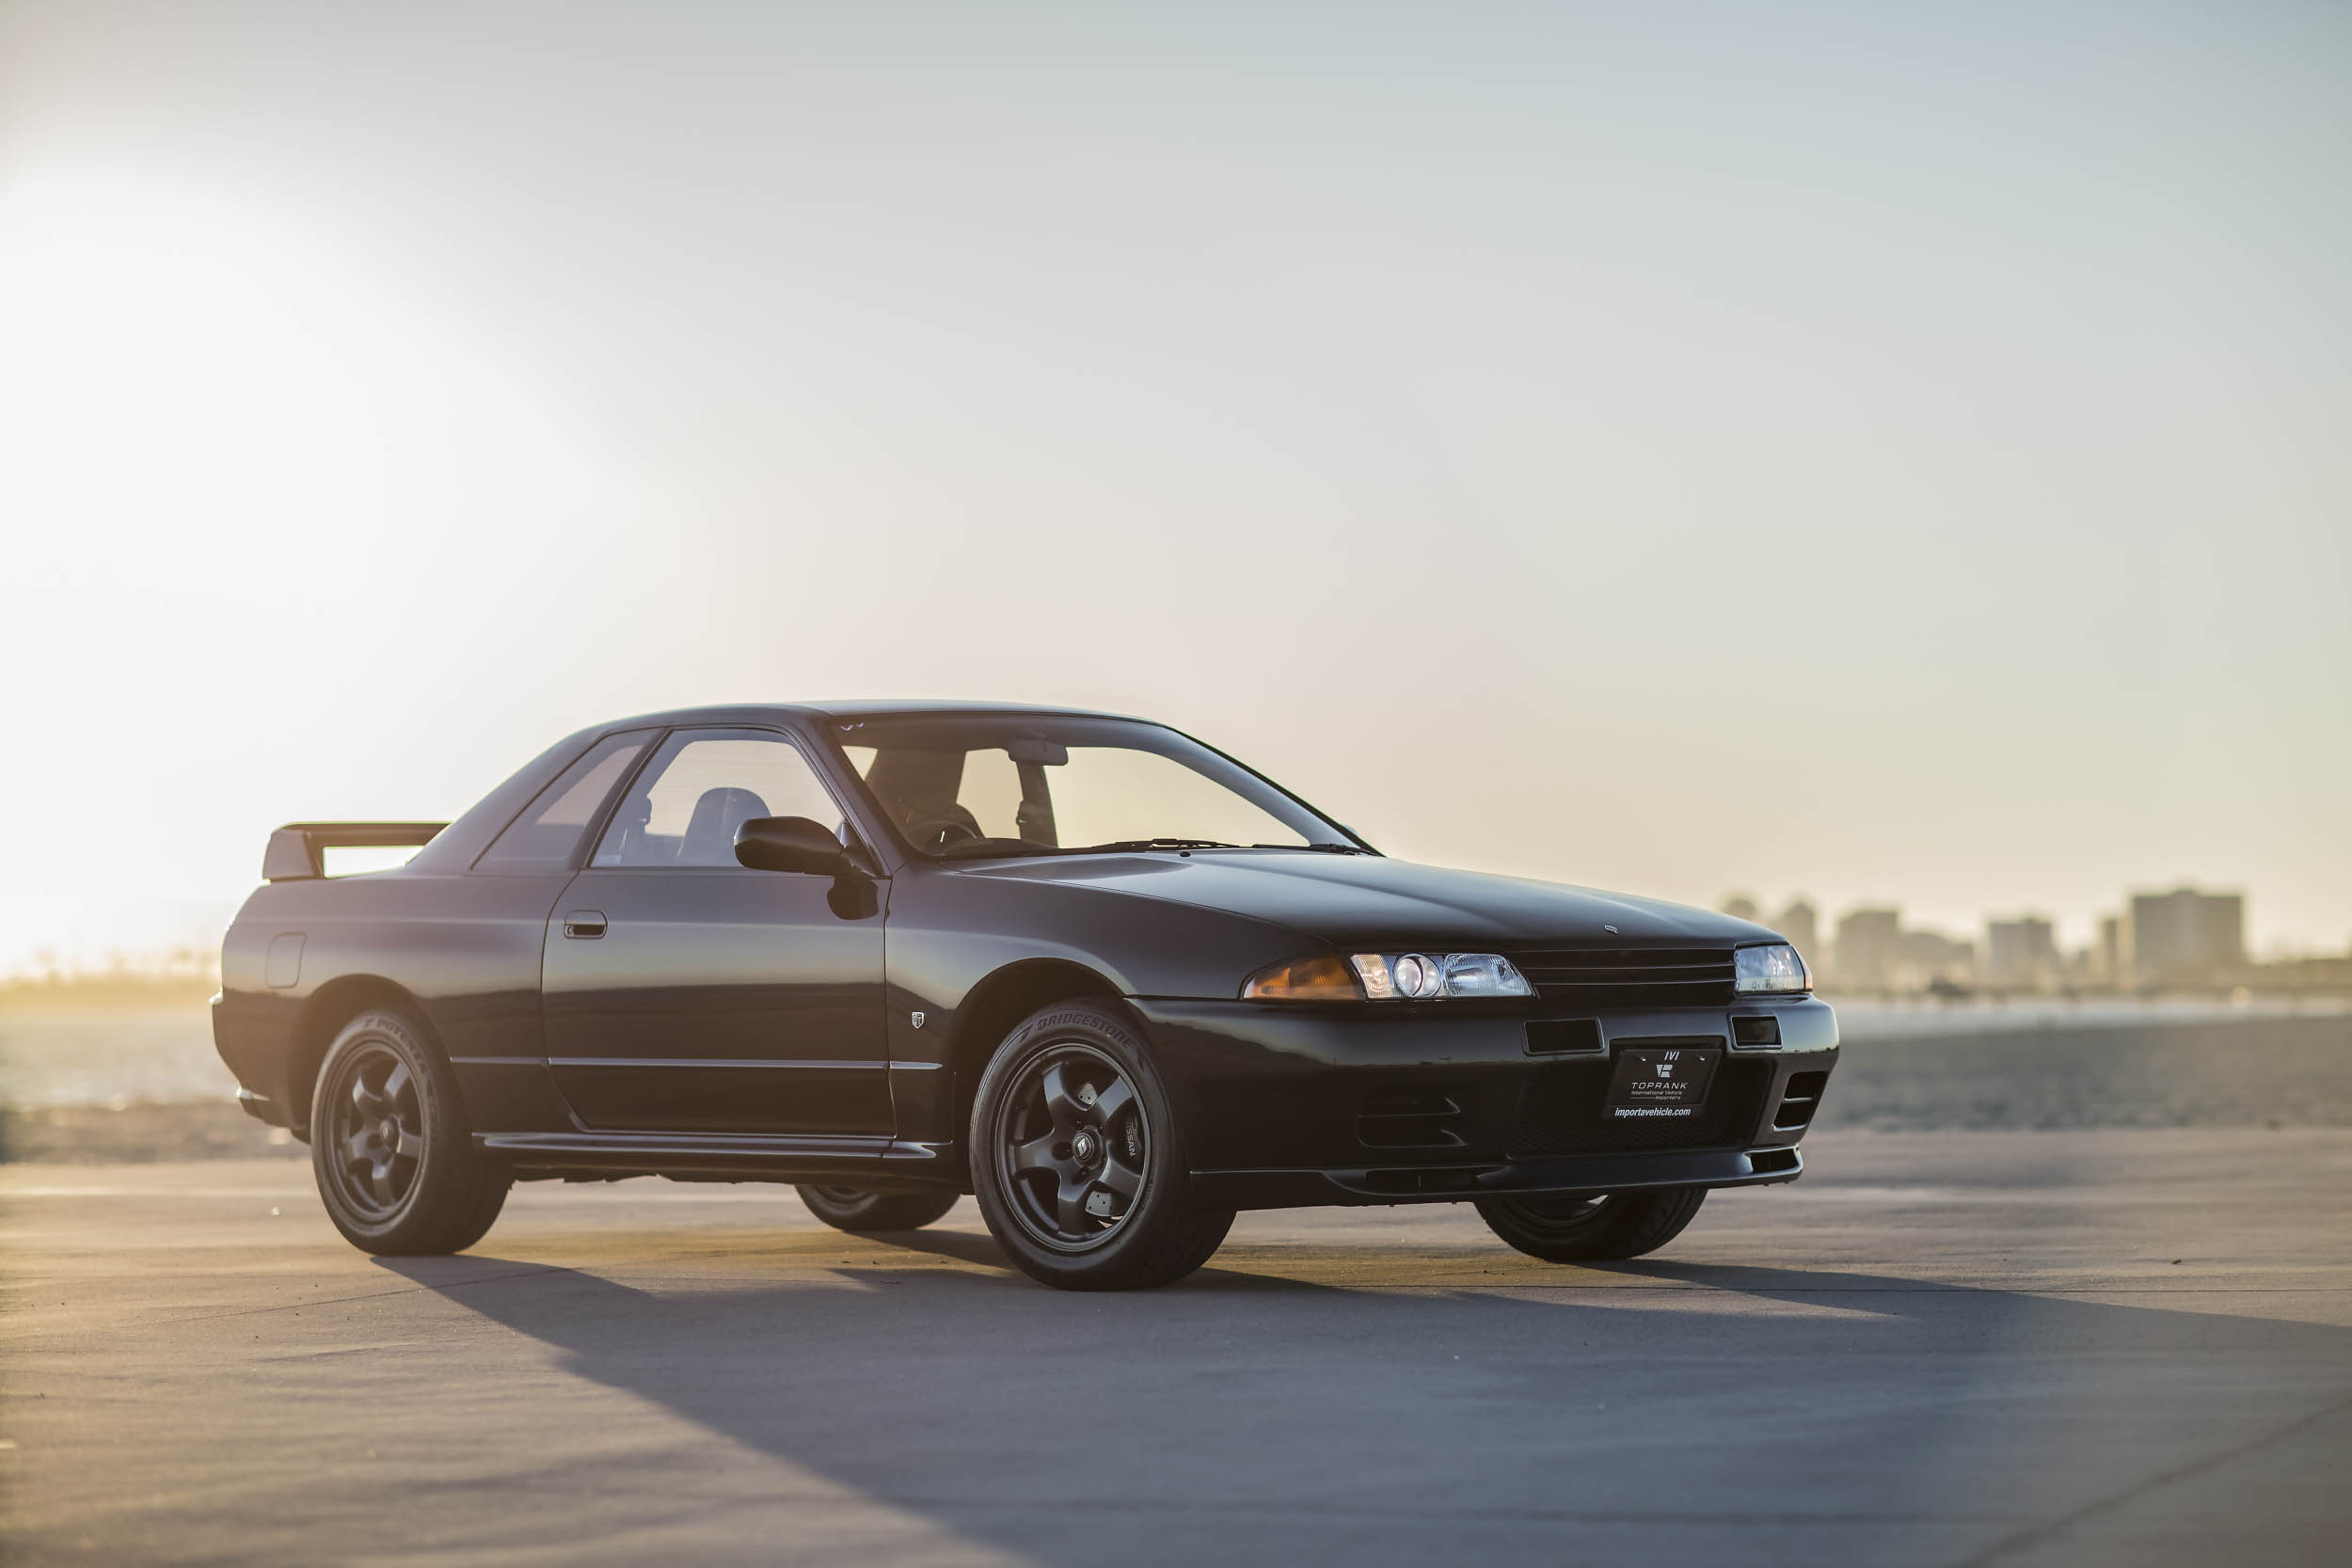 Nissan R32 GT-R front 3/4